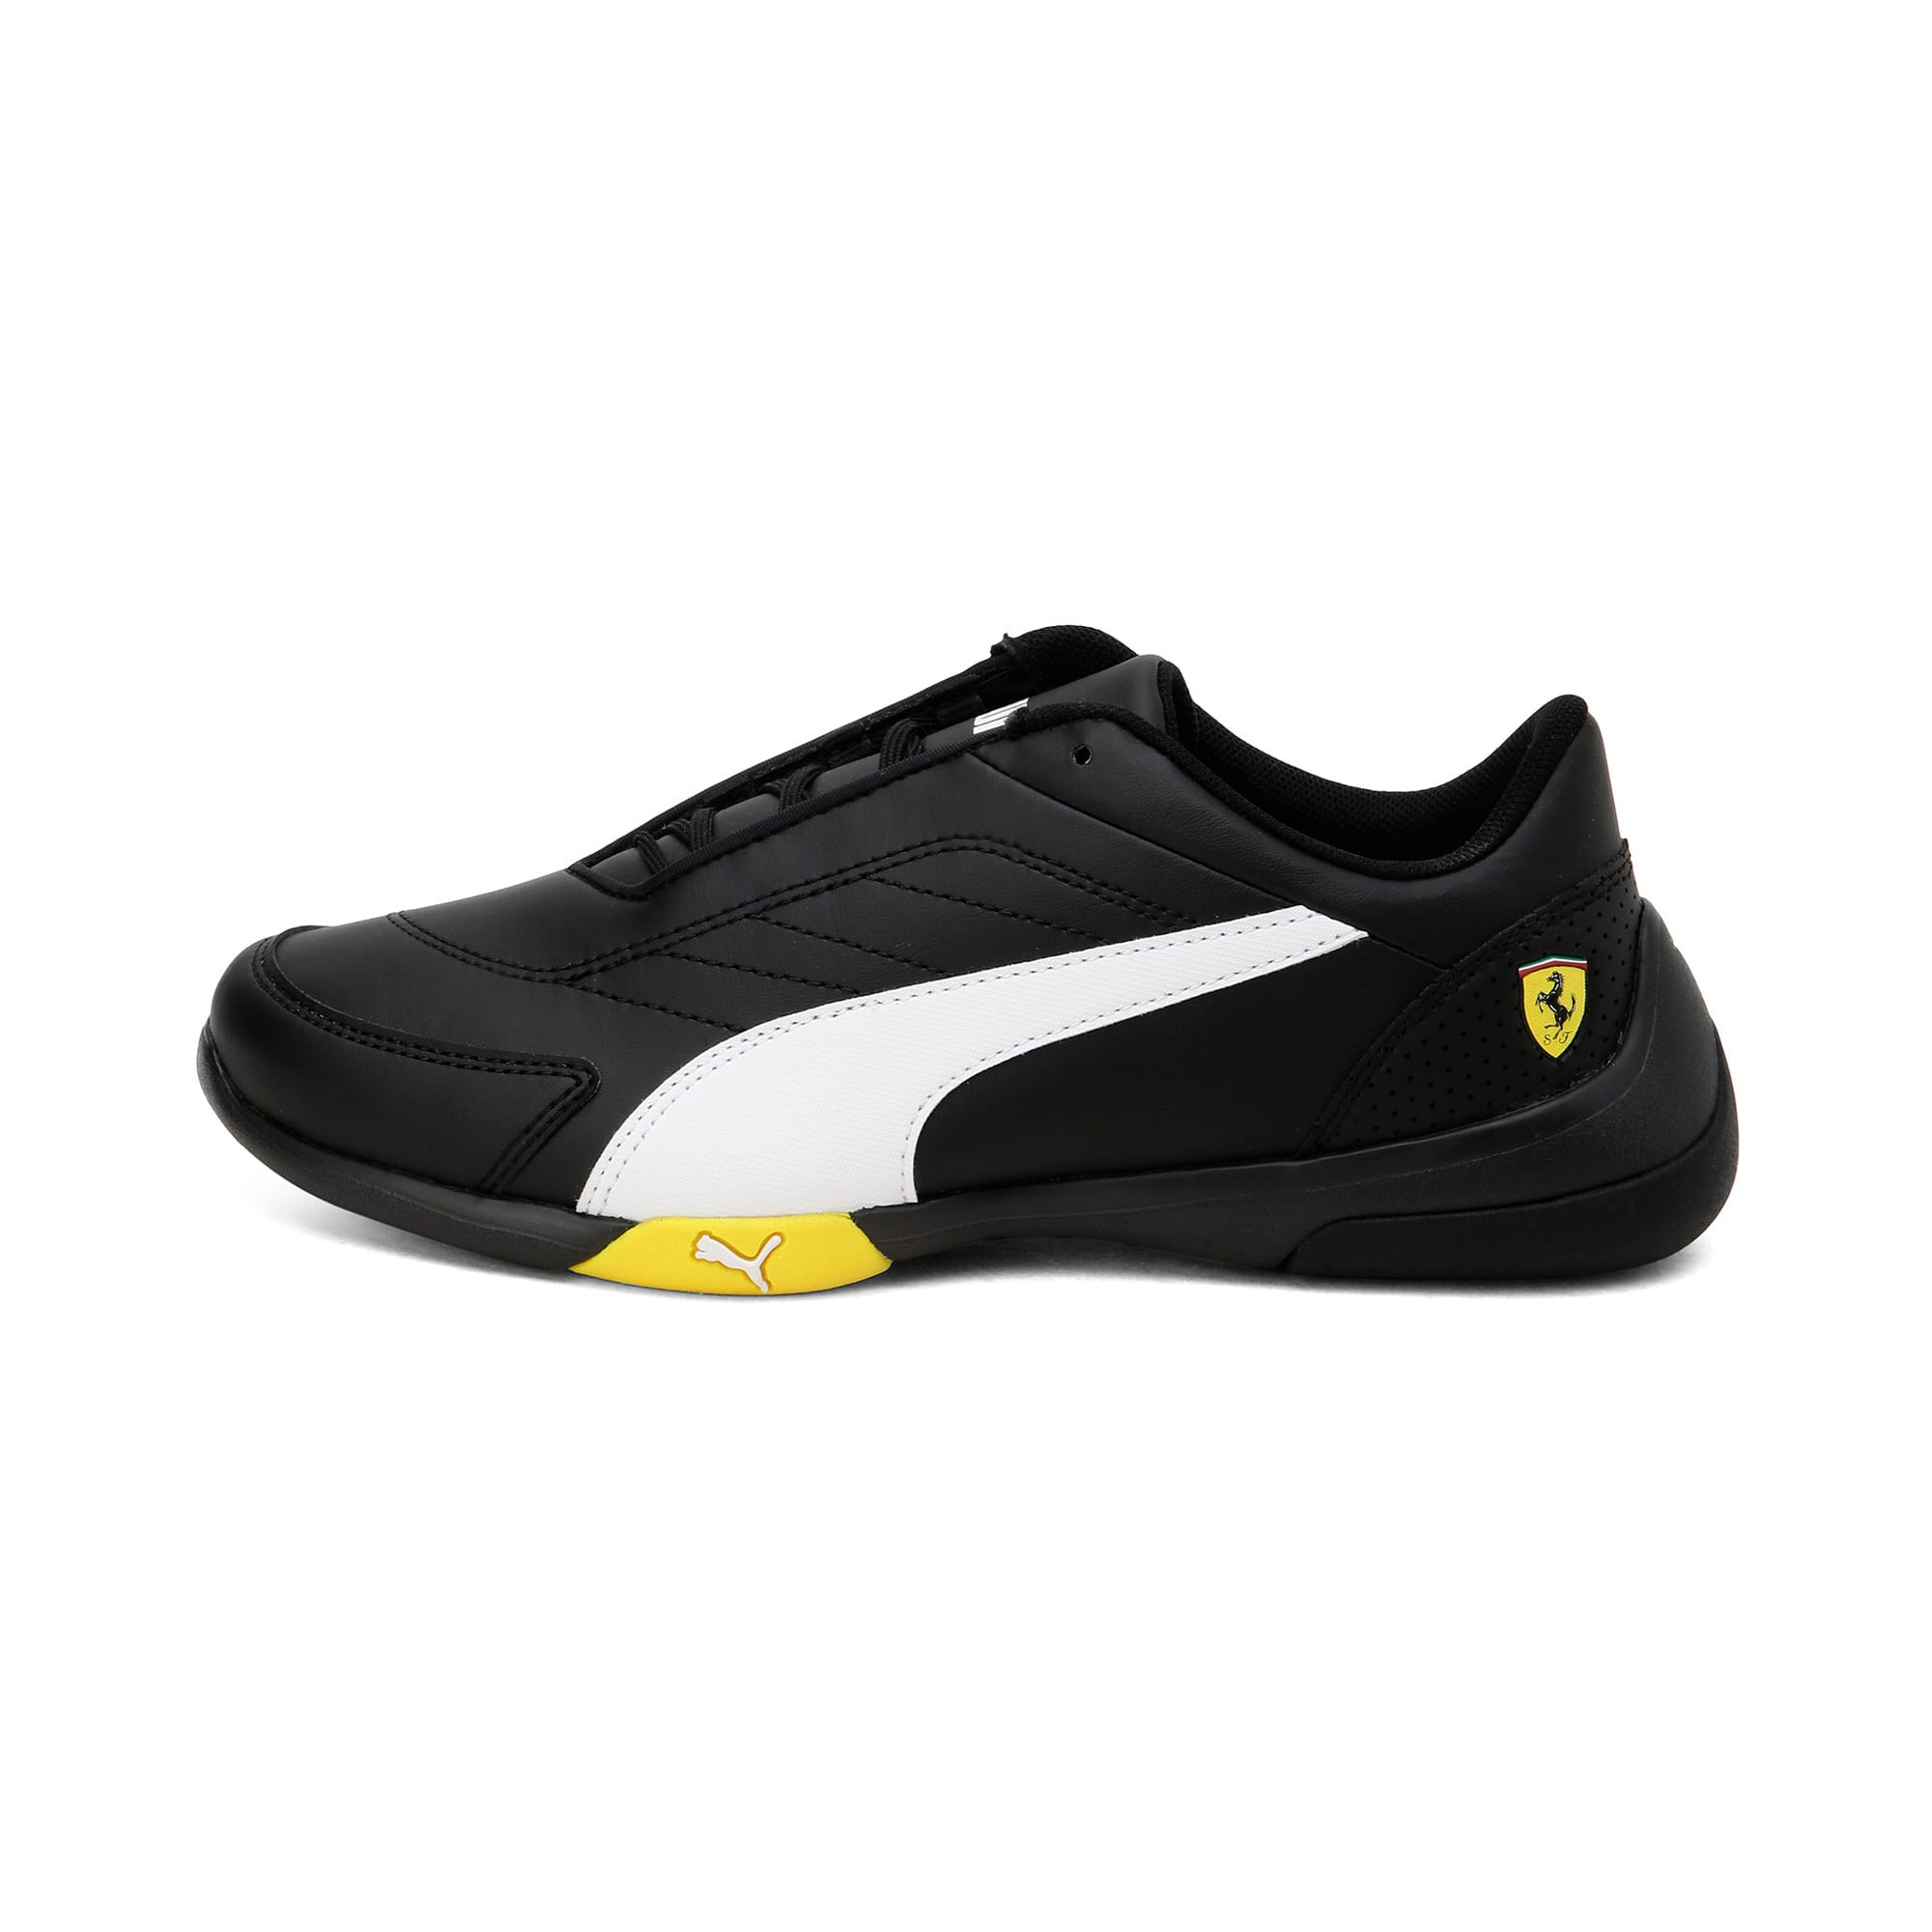 Thumbnail 1 of Ferrari Kart Cat III Youth Trainers, Black-White-Blazing Yellow, medium-IND